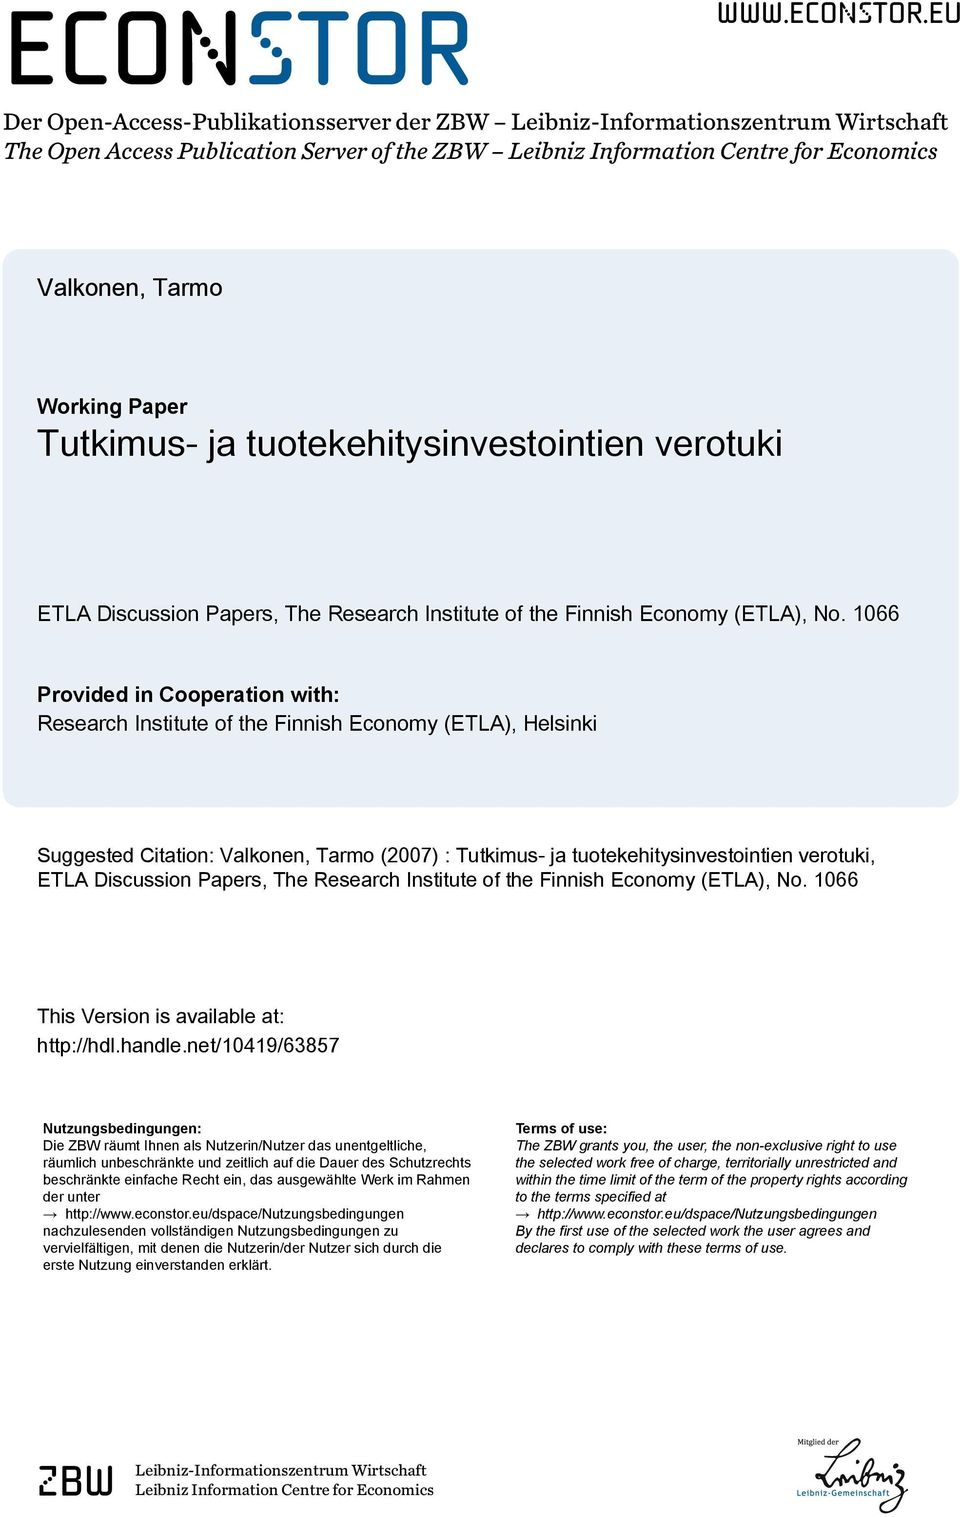 eu Der Open-Access-Publikationsserver der ZBW Leibniz-Informationszentrum Wirtschaft The Open Access Publication Server of the ZBW Leibniz Information Centre for Economics Valkonen, Tarmo Working